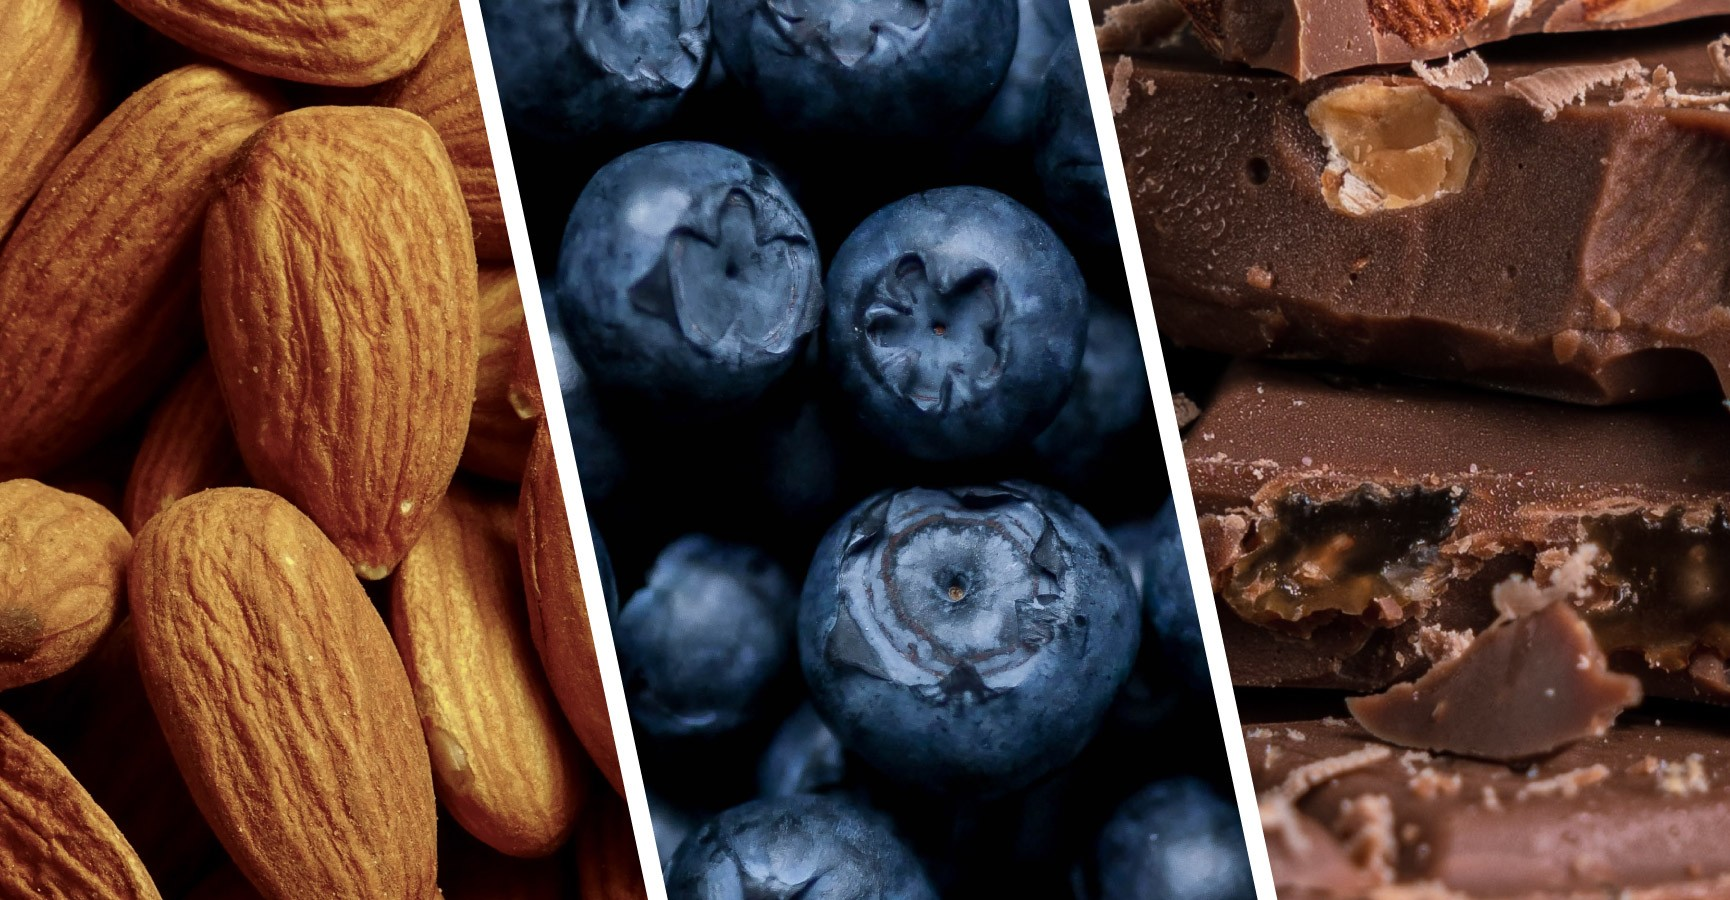 Images of almonds, blueberries and chocolate, foods threatened by biodiversity loss